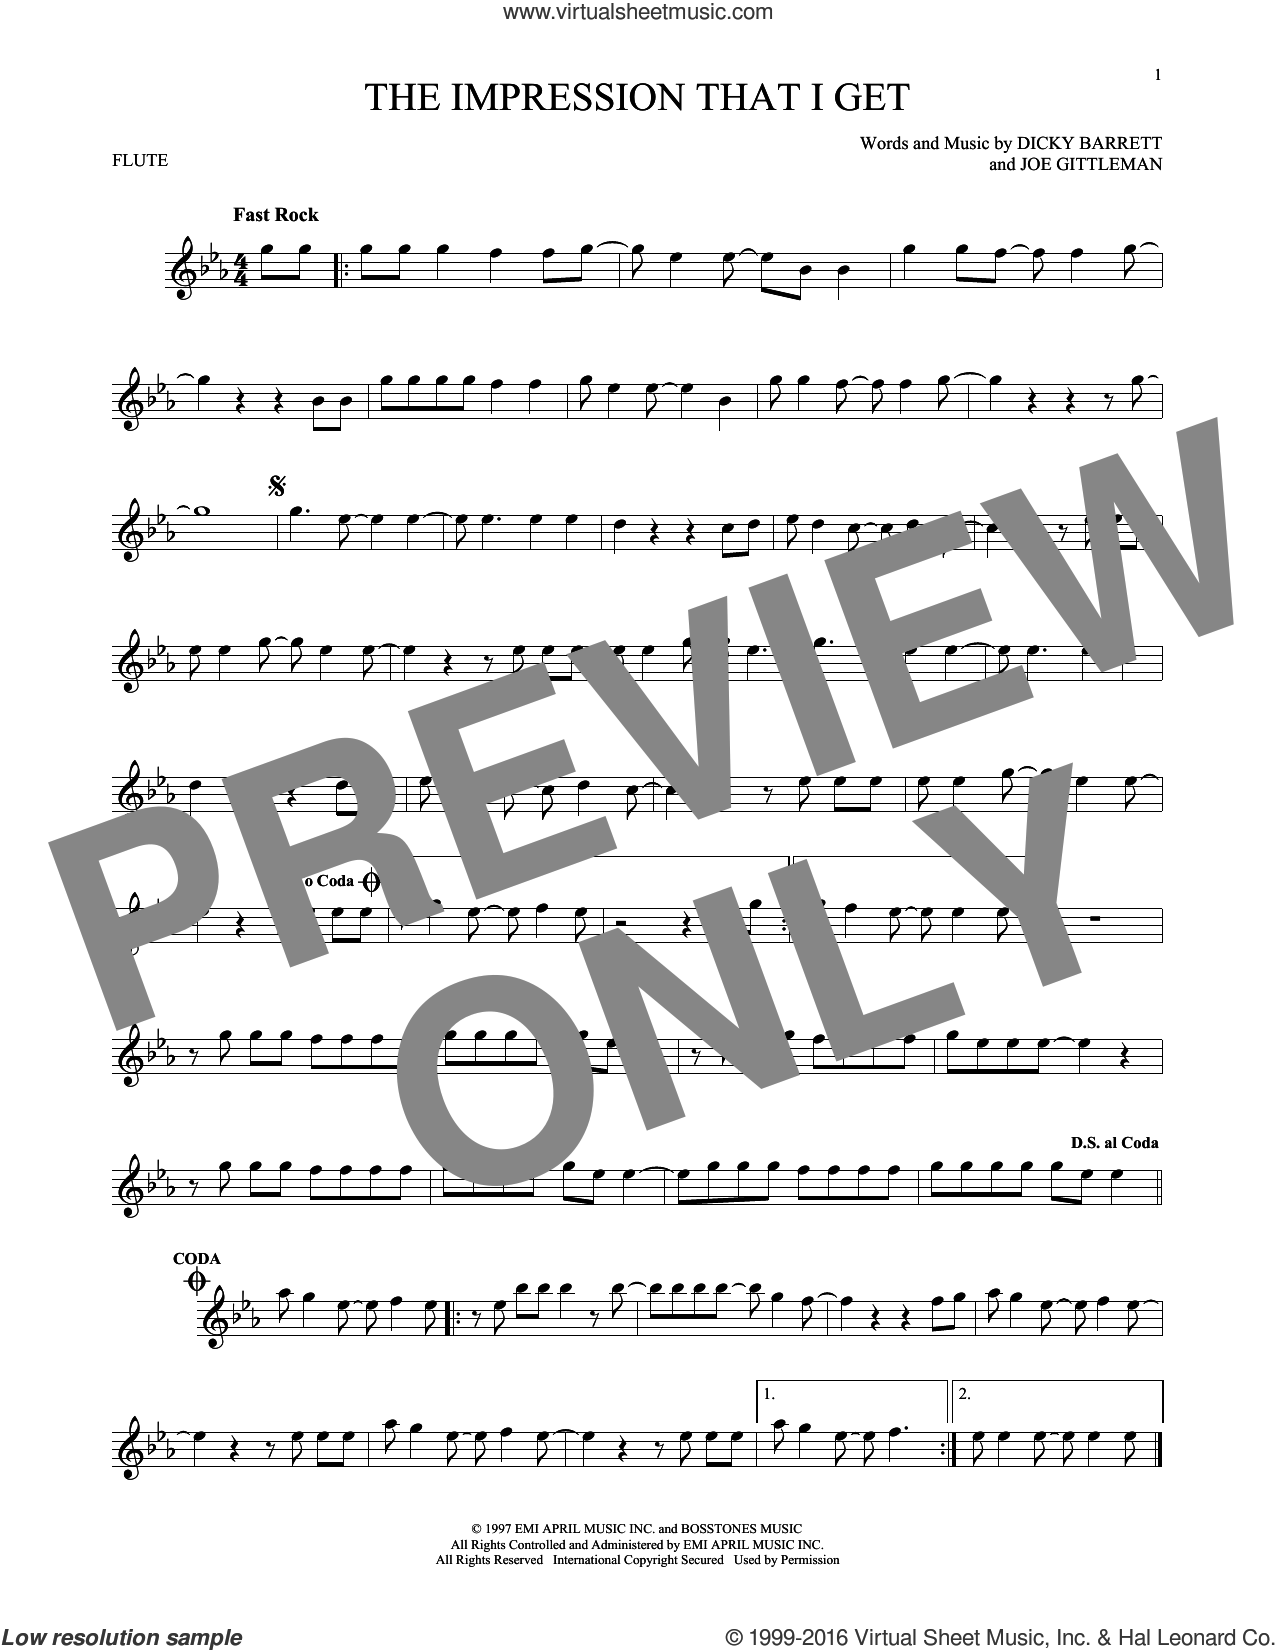 The Impression That I Get sheet music for flute solo by Joe Gittleman. Score Image Preview.